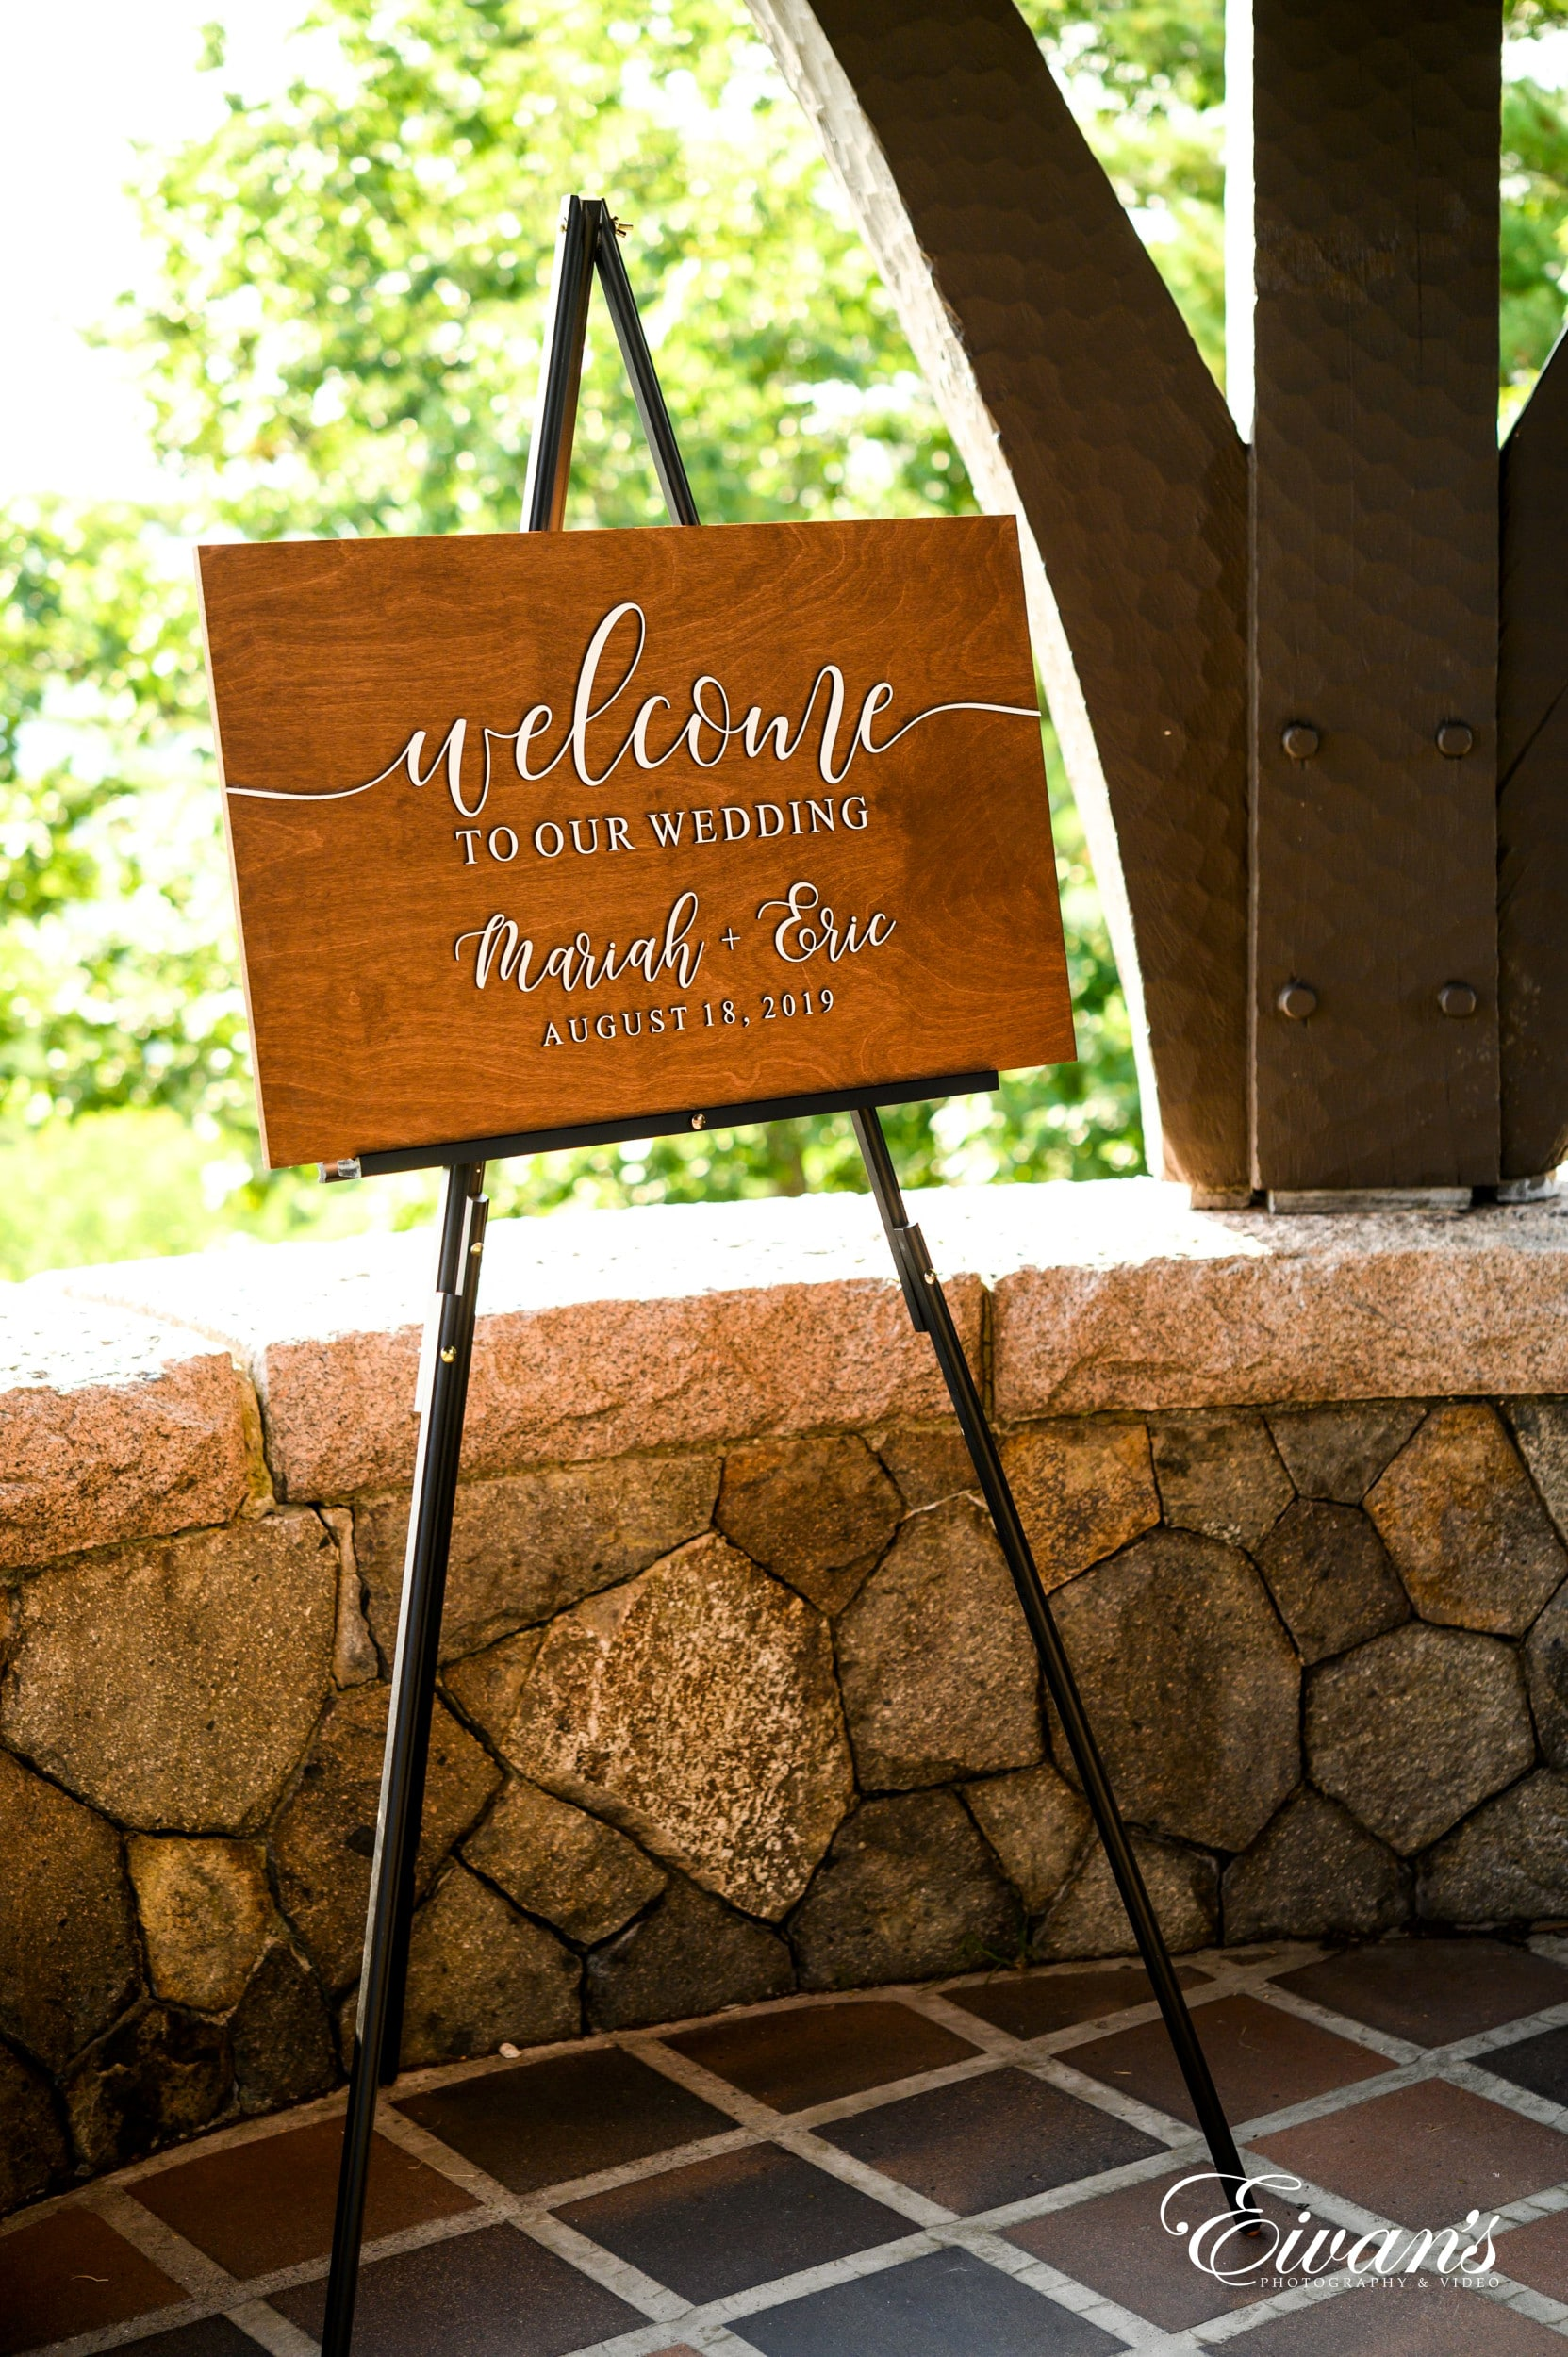 10 Wedding Welcome Sign Ideas To Use On Your Wedding Day